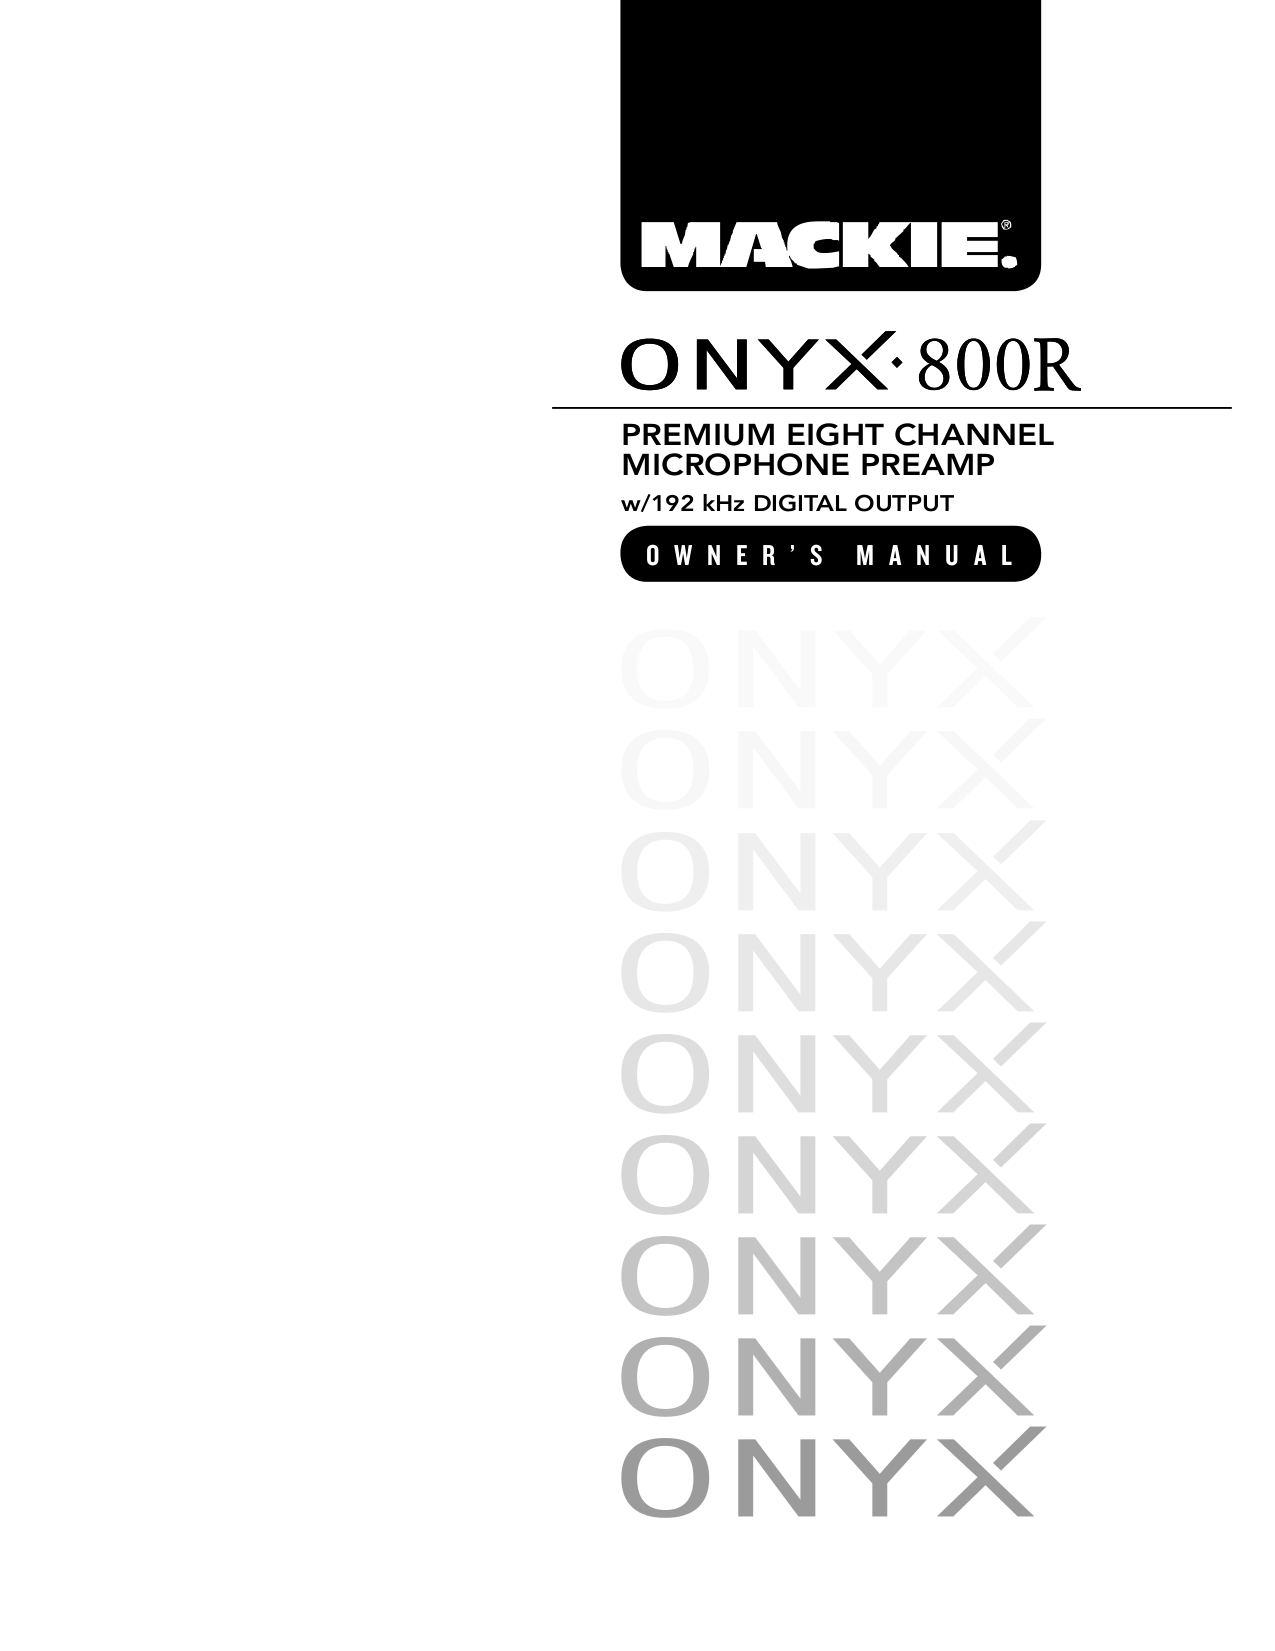 Download free pdf for Mackie ONYX 800R Air Conditioner manual